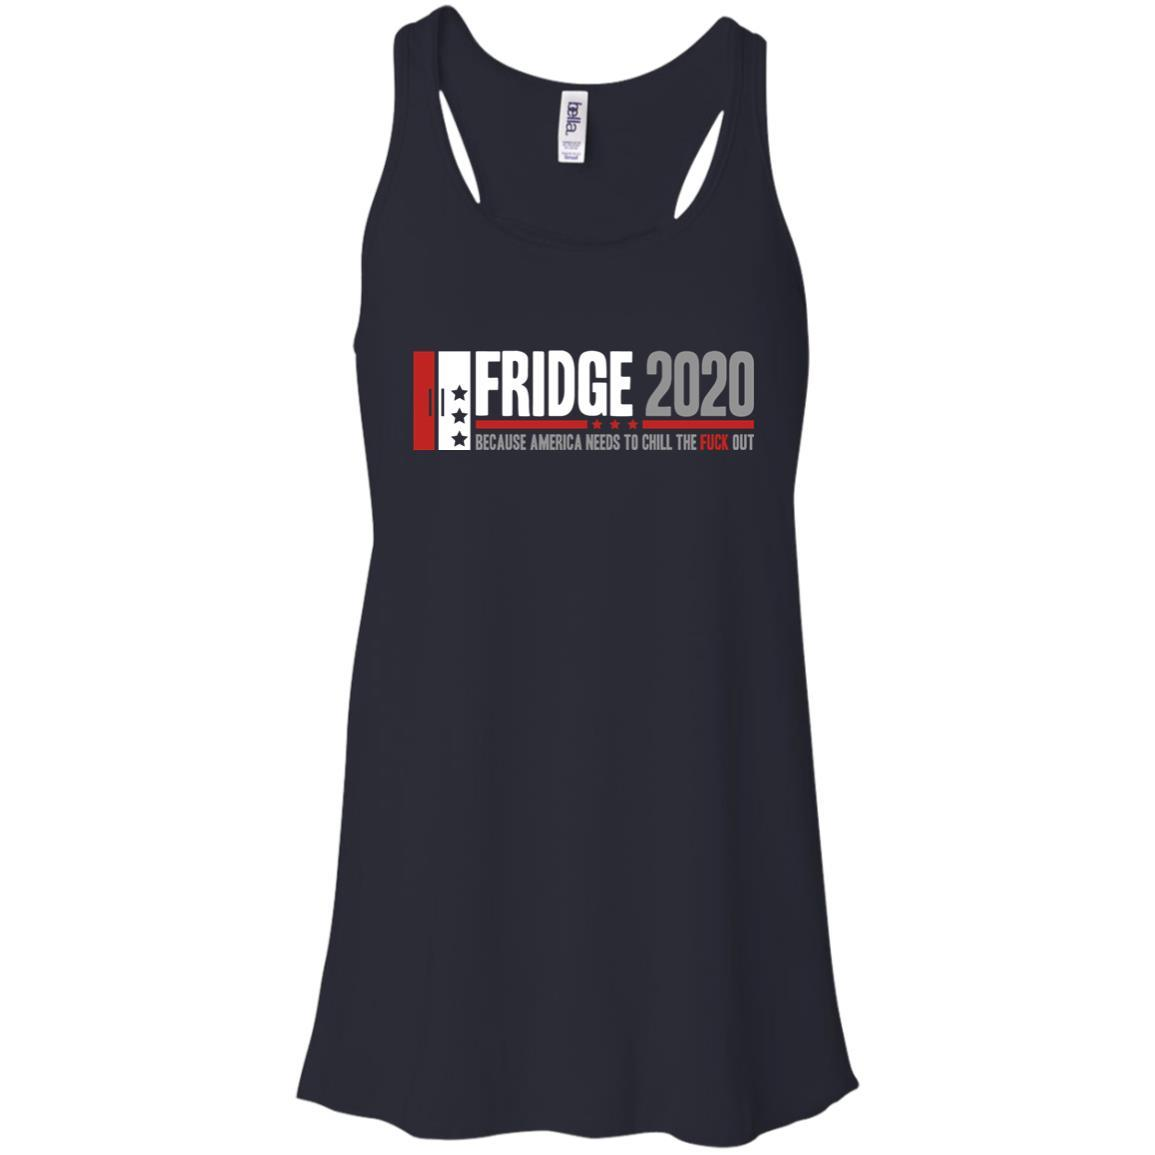 T-Shirts - Fridge 2020 Flowy Tank